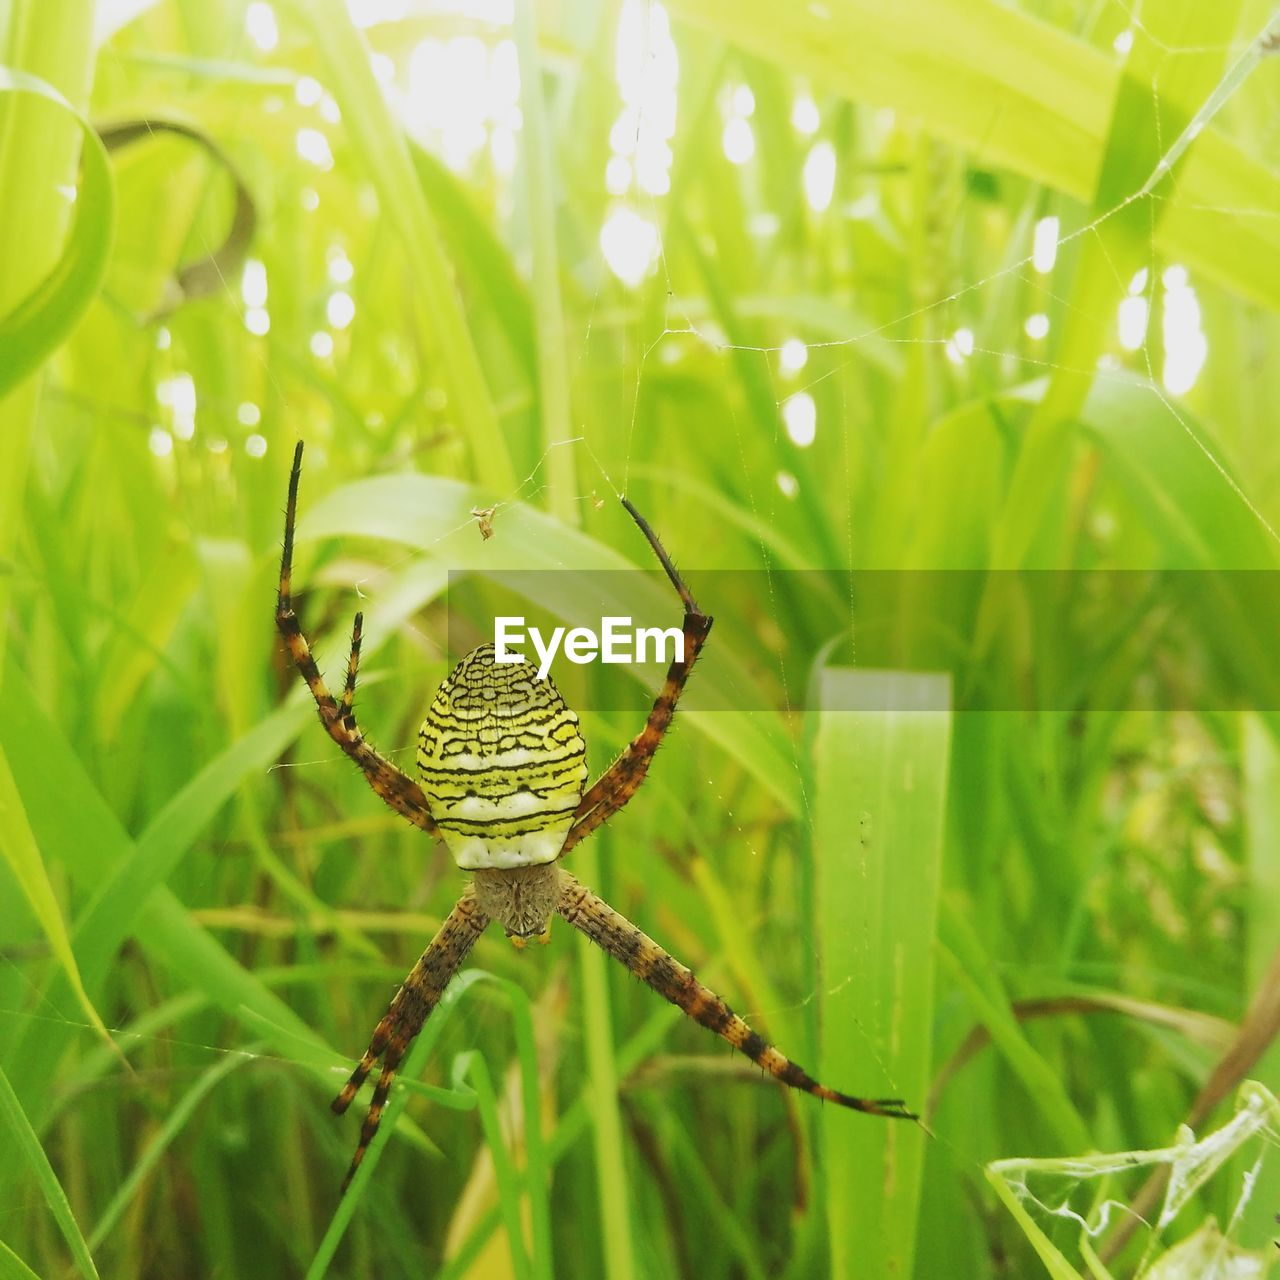 green color, plant, growth, animal wildlife, animals in the wild, beauty in nature, nature, plant part, leaf, animal, close-up, animal themes, day, invertebrate, one animal, no people, insect, focus on foreground, arachnid, spider, outdoors, blade of grass